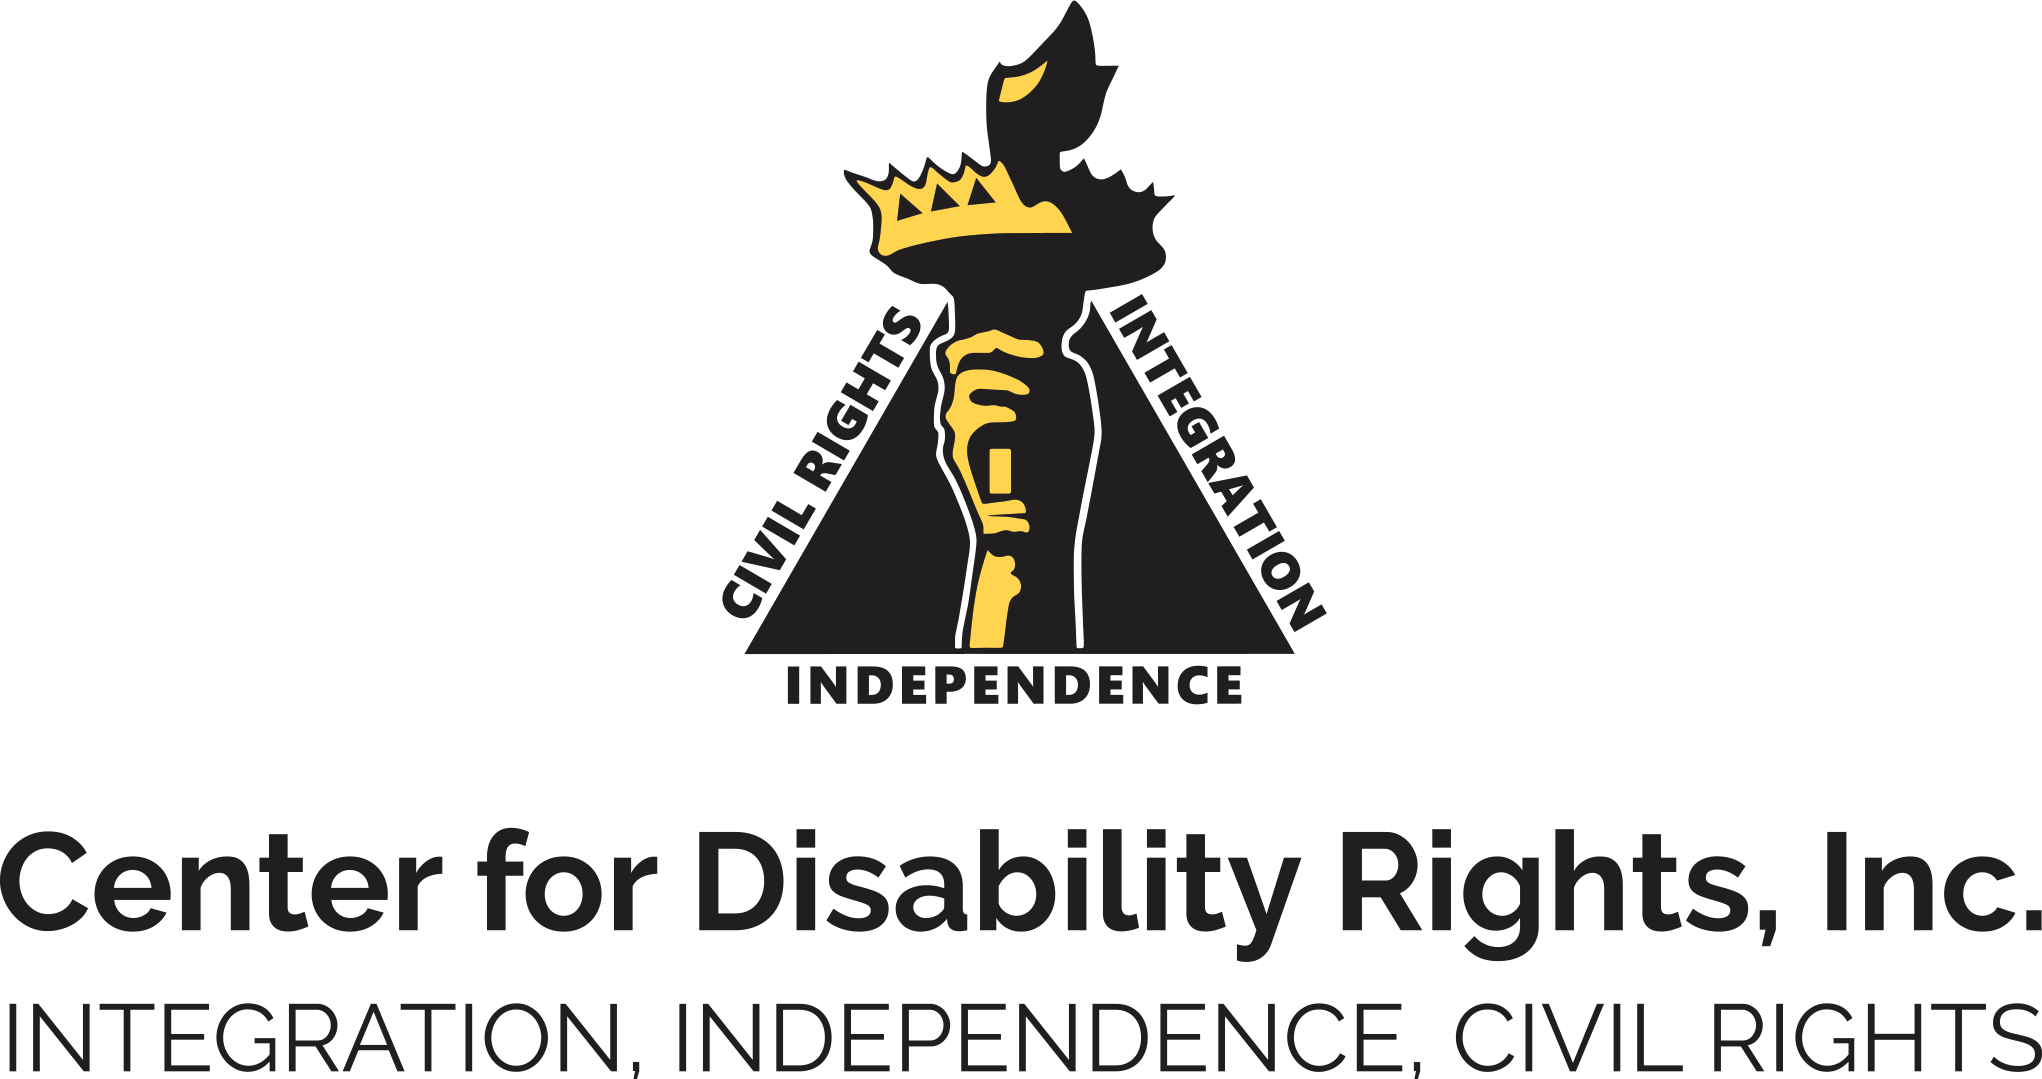 Logo of the Center for Disability Rights